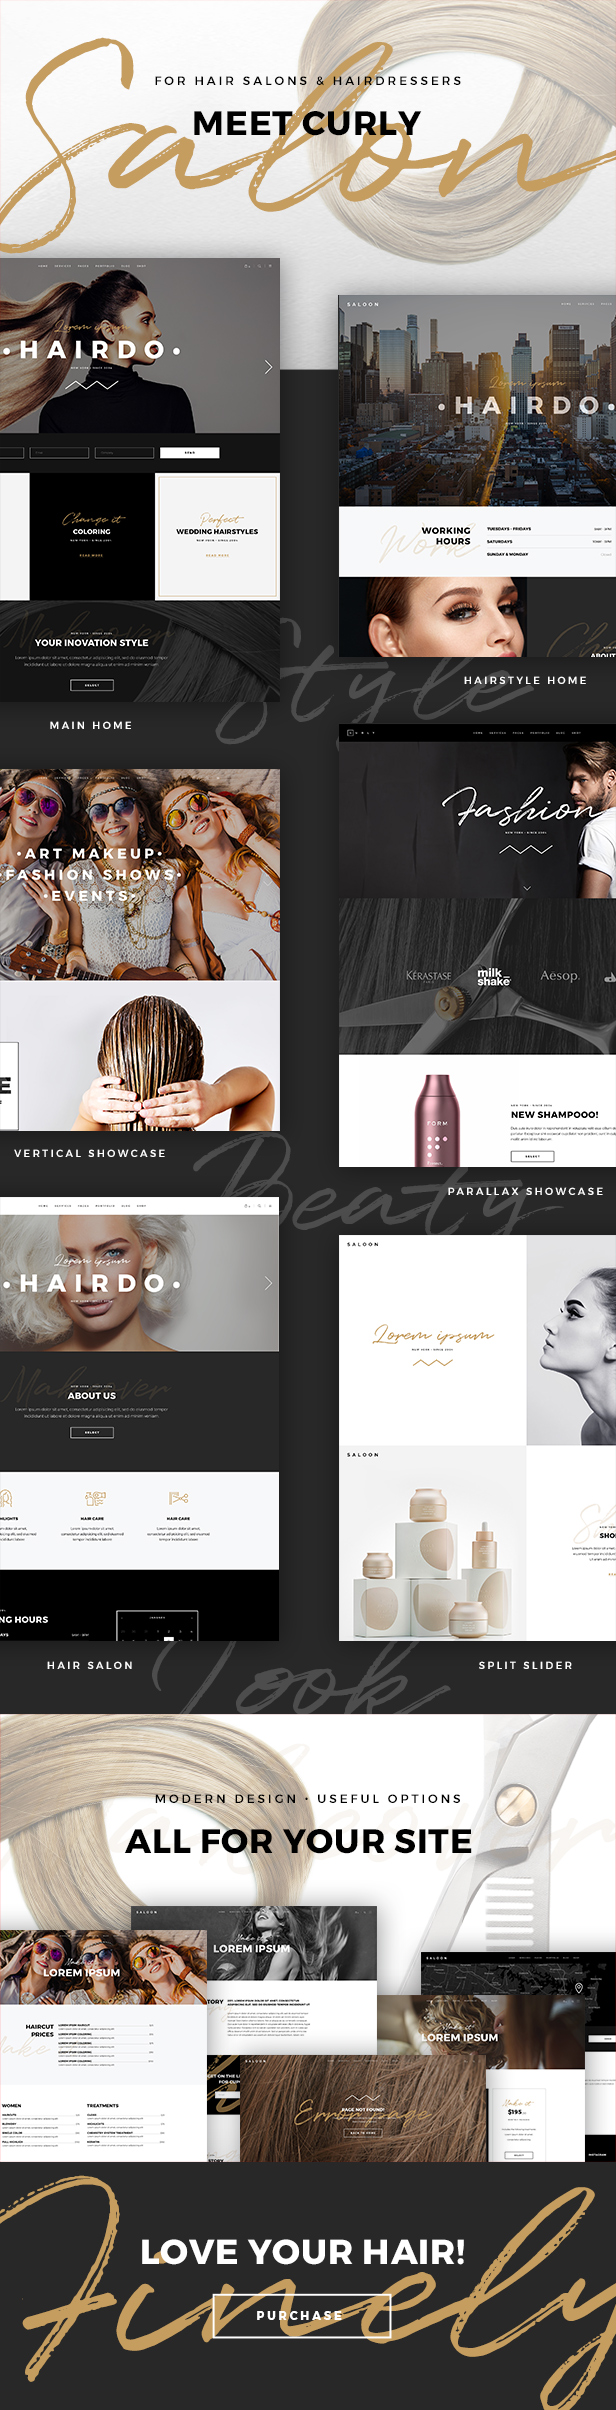 Curly - A Stylish Theme for Hairdressers and Hair Salons Download